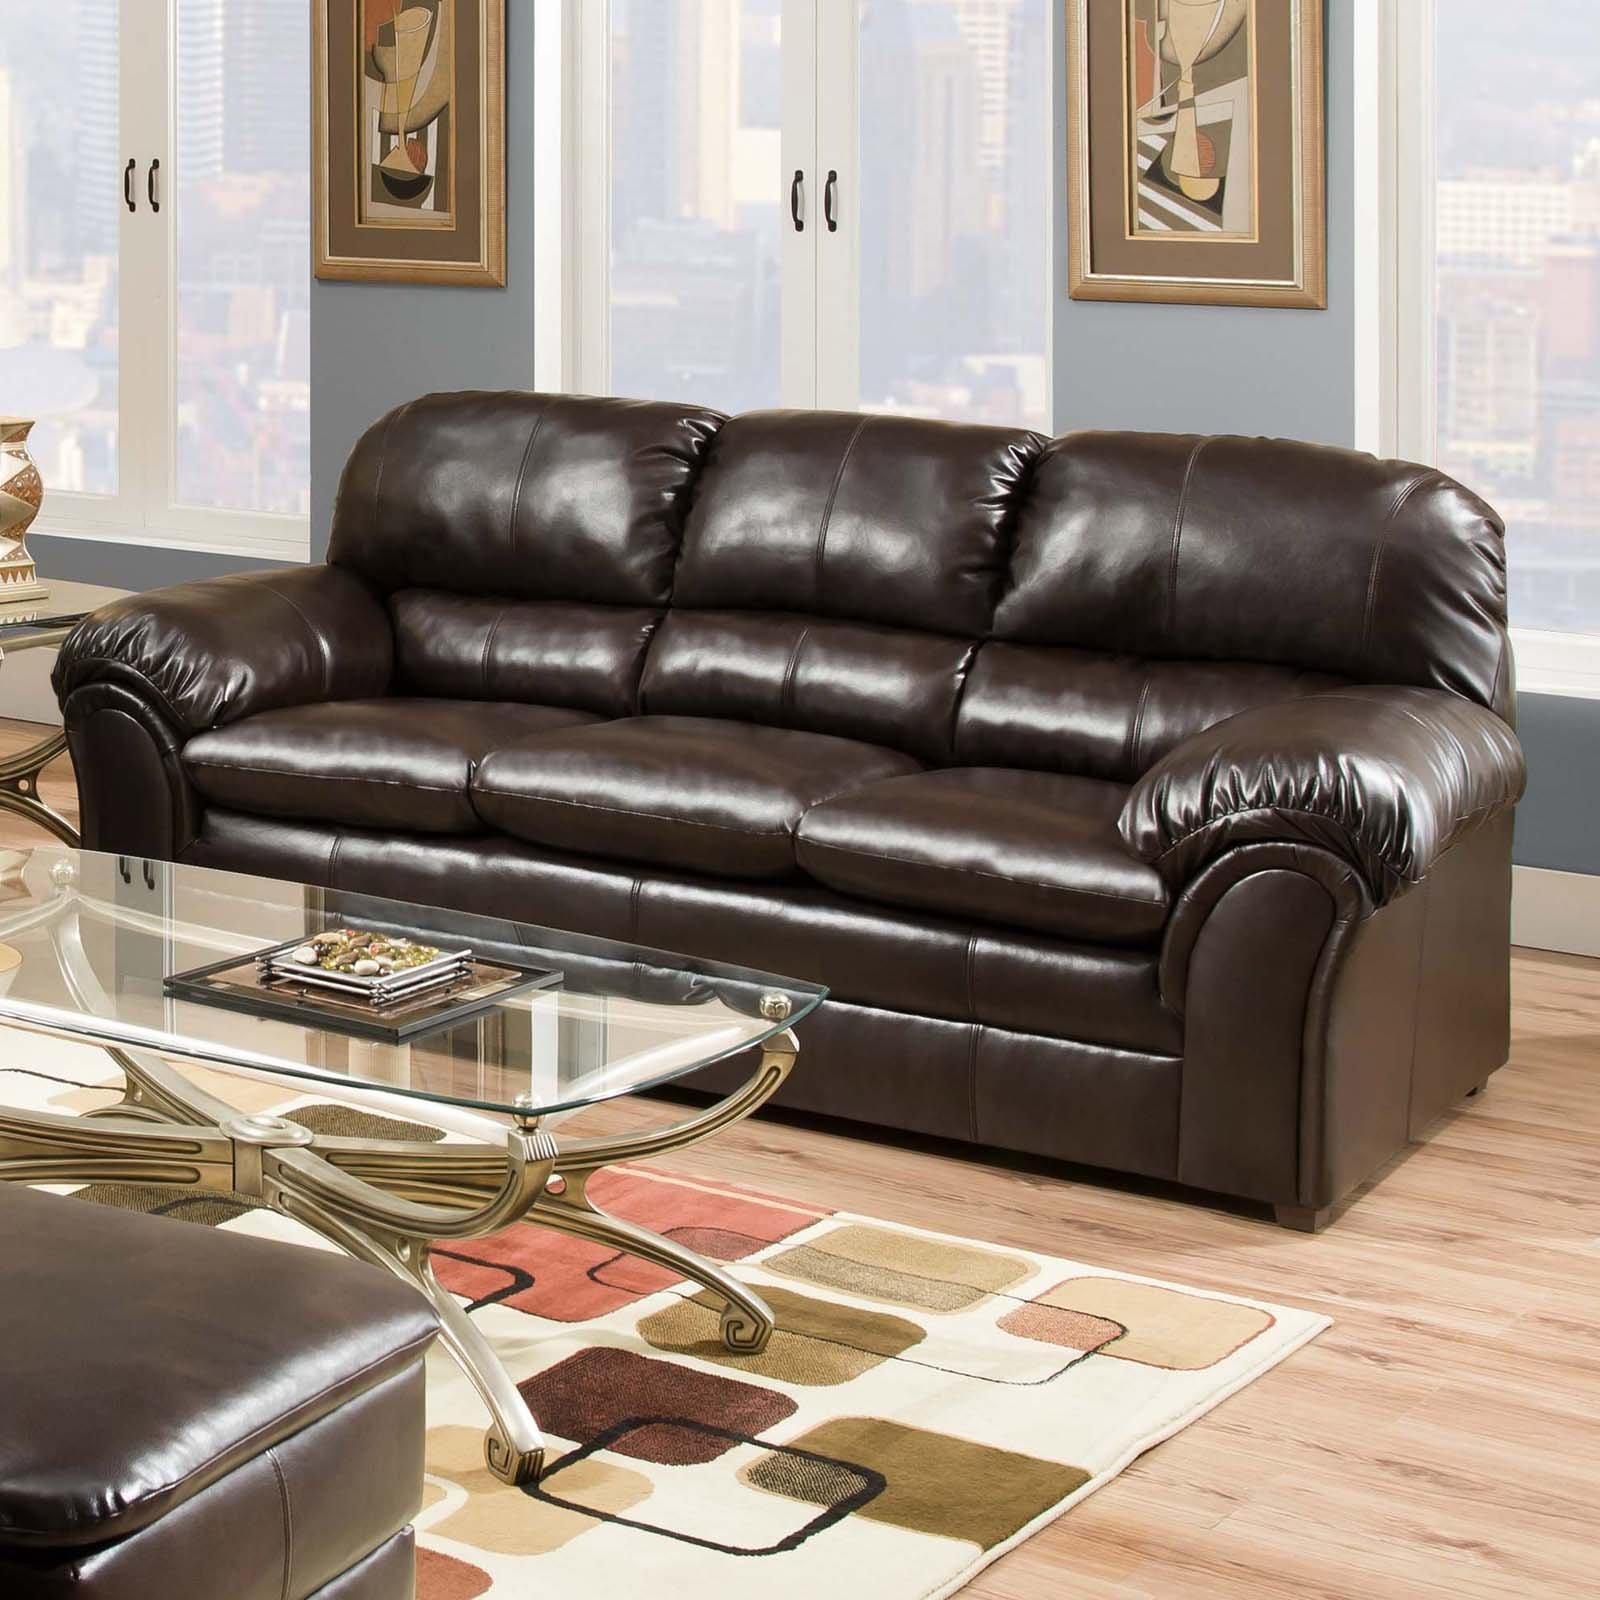 Simmons Upholstery Premier Bonded Leather Sofa | Hayneedle With Bonded Leather Sofas (Image 17 of 20)